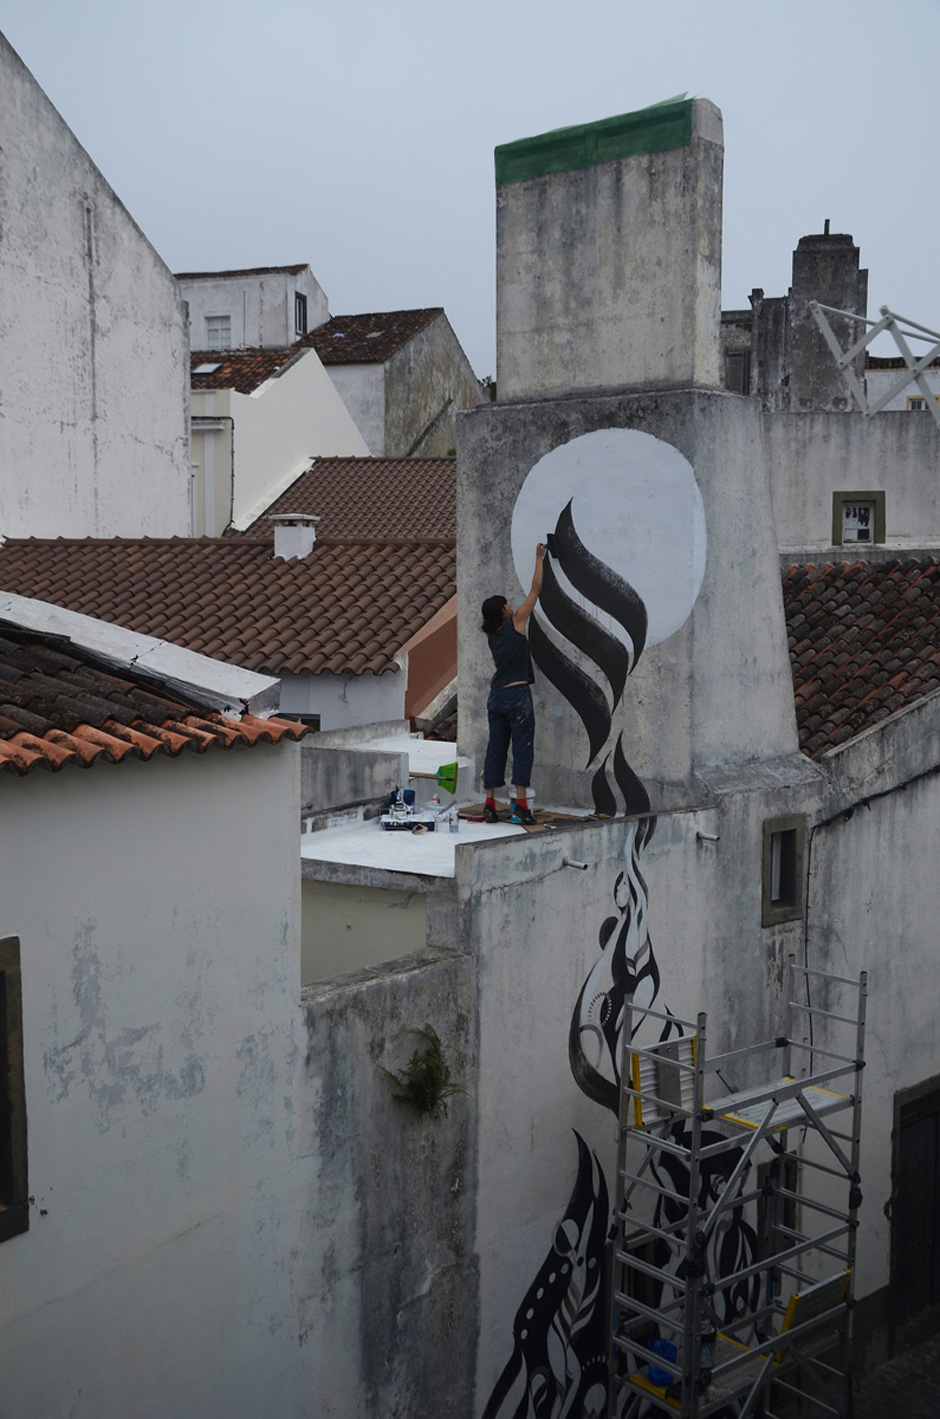 Lucy McLauchlan: New Murals in the Azores: lucy-mclauchlans-murals-travel-azores-for-summer-5043.jpg